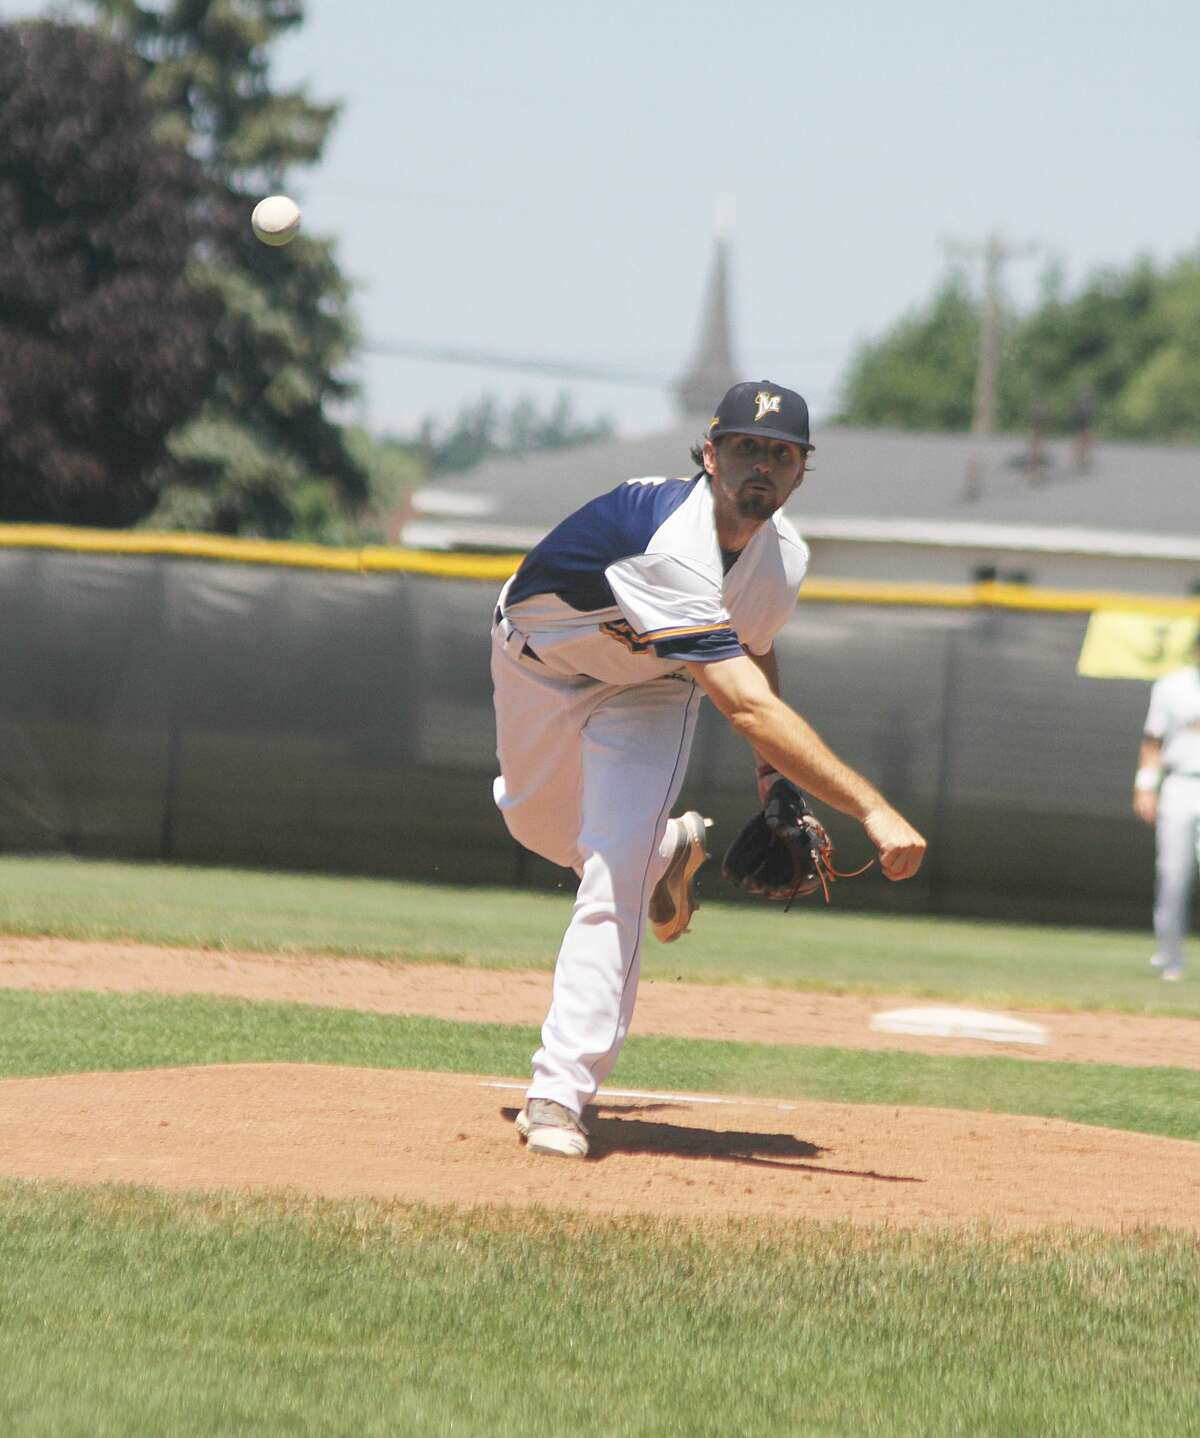 Roddy MacNeil and the Manistee Saints will travel to Big Rapids on Wednesday for a midweek game against the Grand Rapids Brewers.